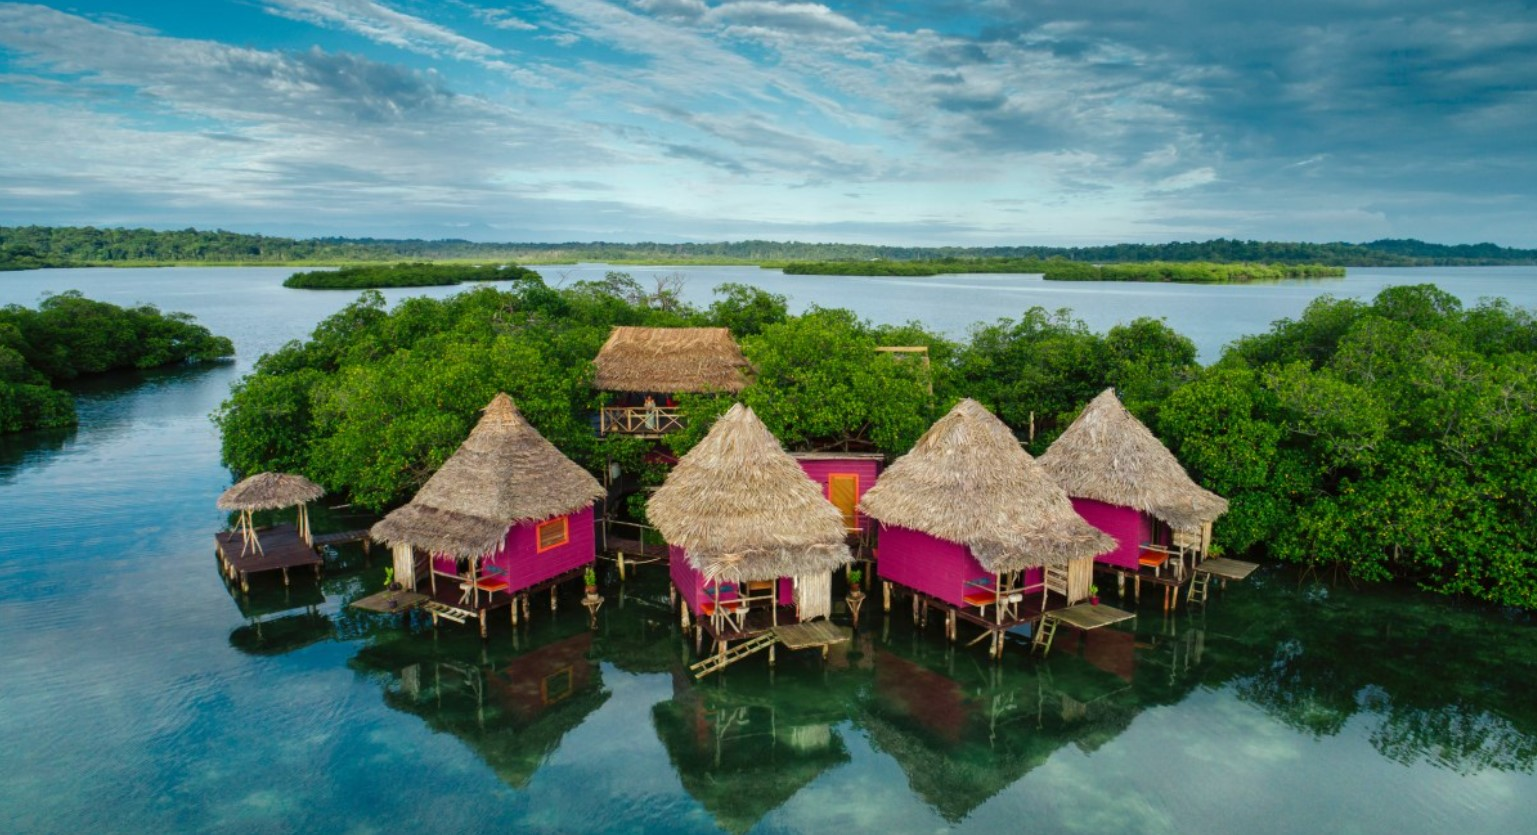 An aerial view of bright pink overwater bungalows in the caribbean with thatch rooves surrounded by jungle and the ocean